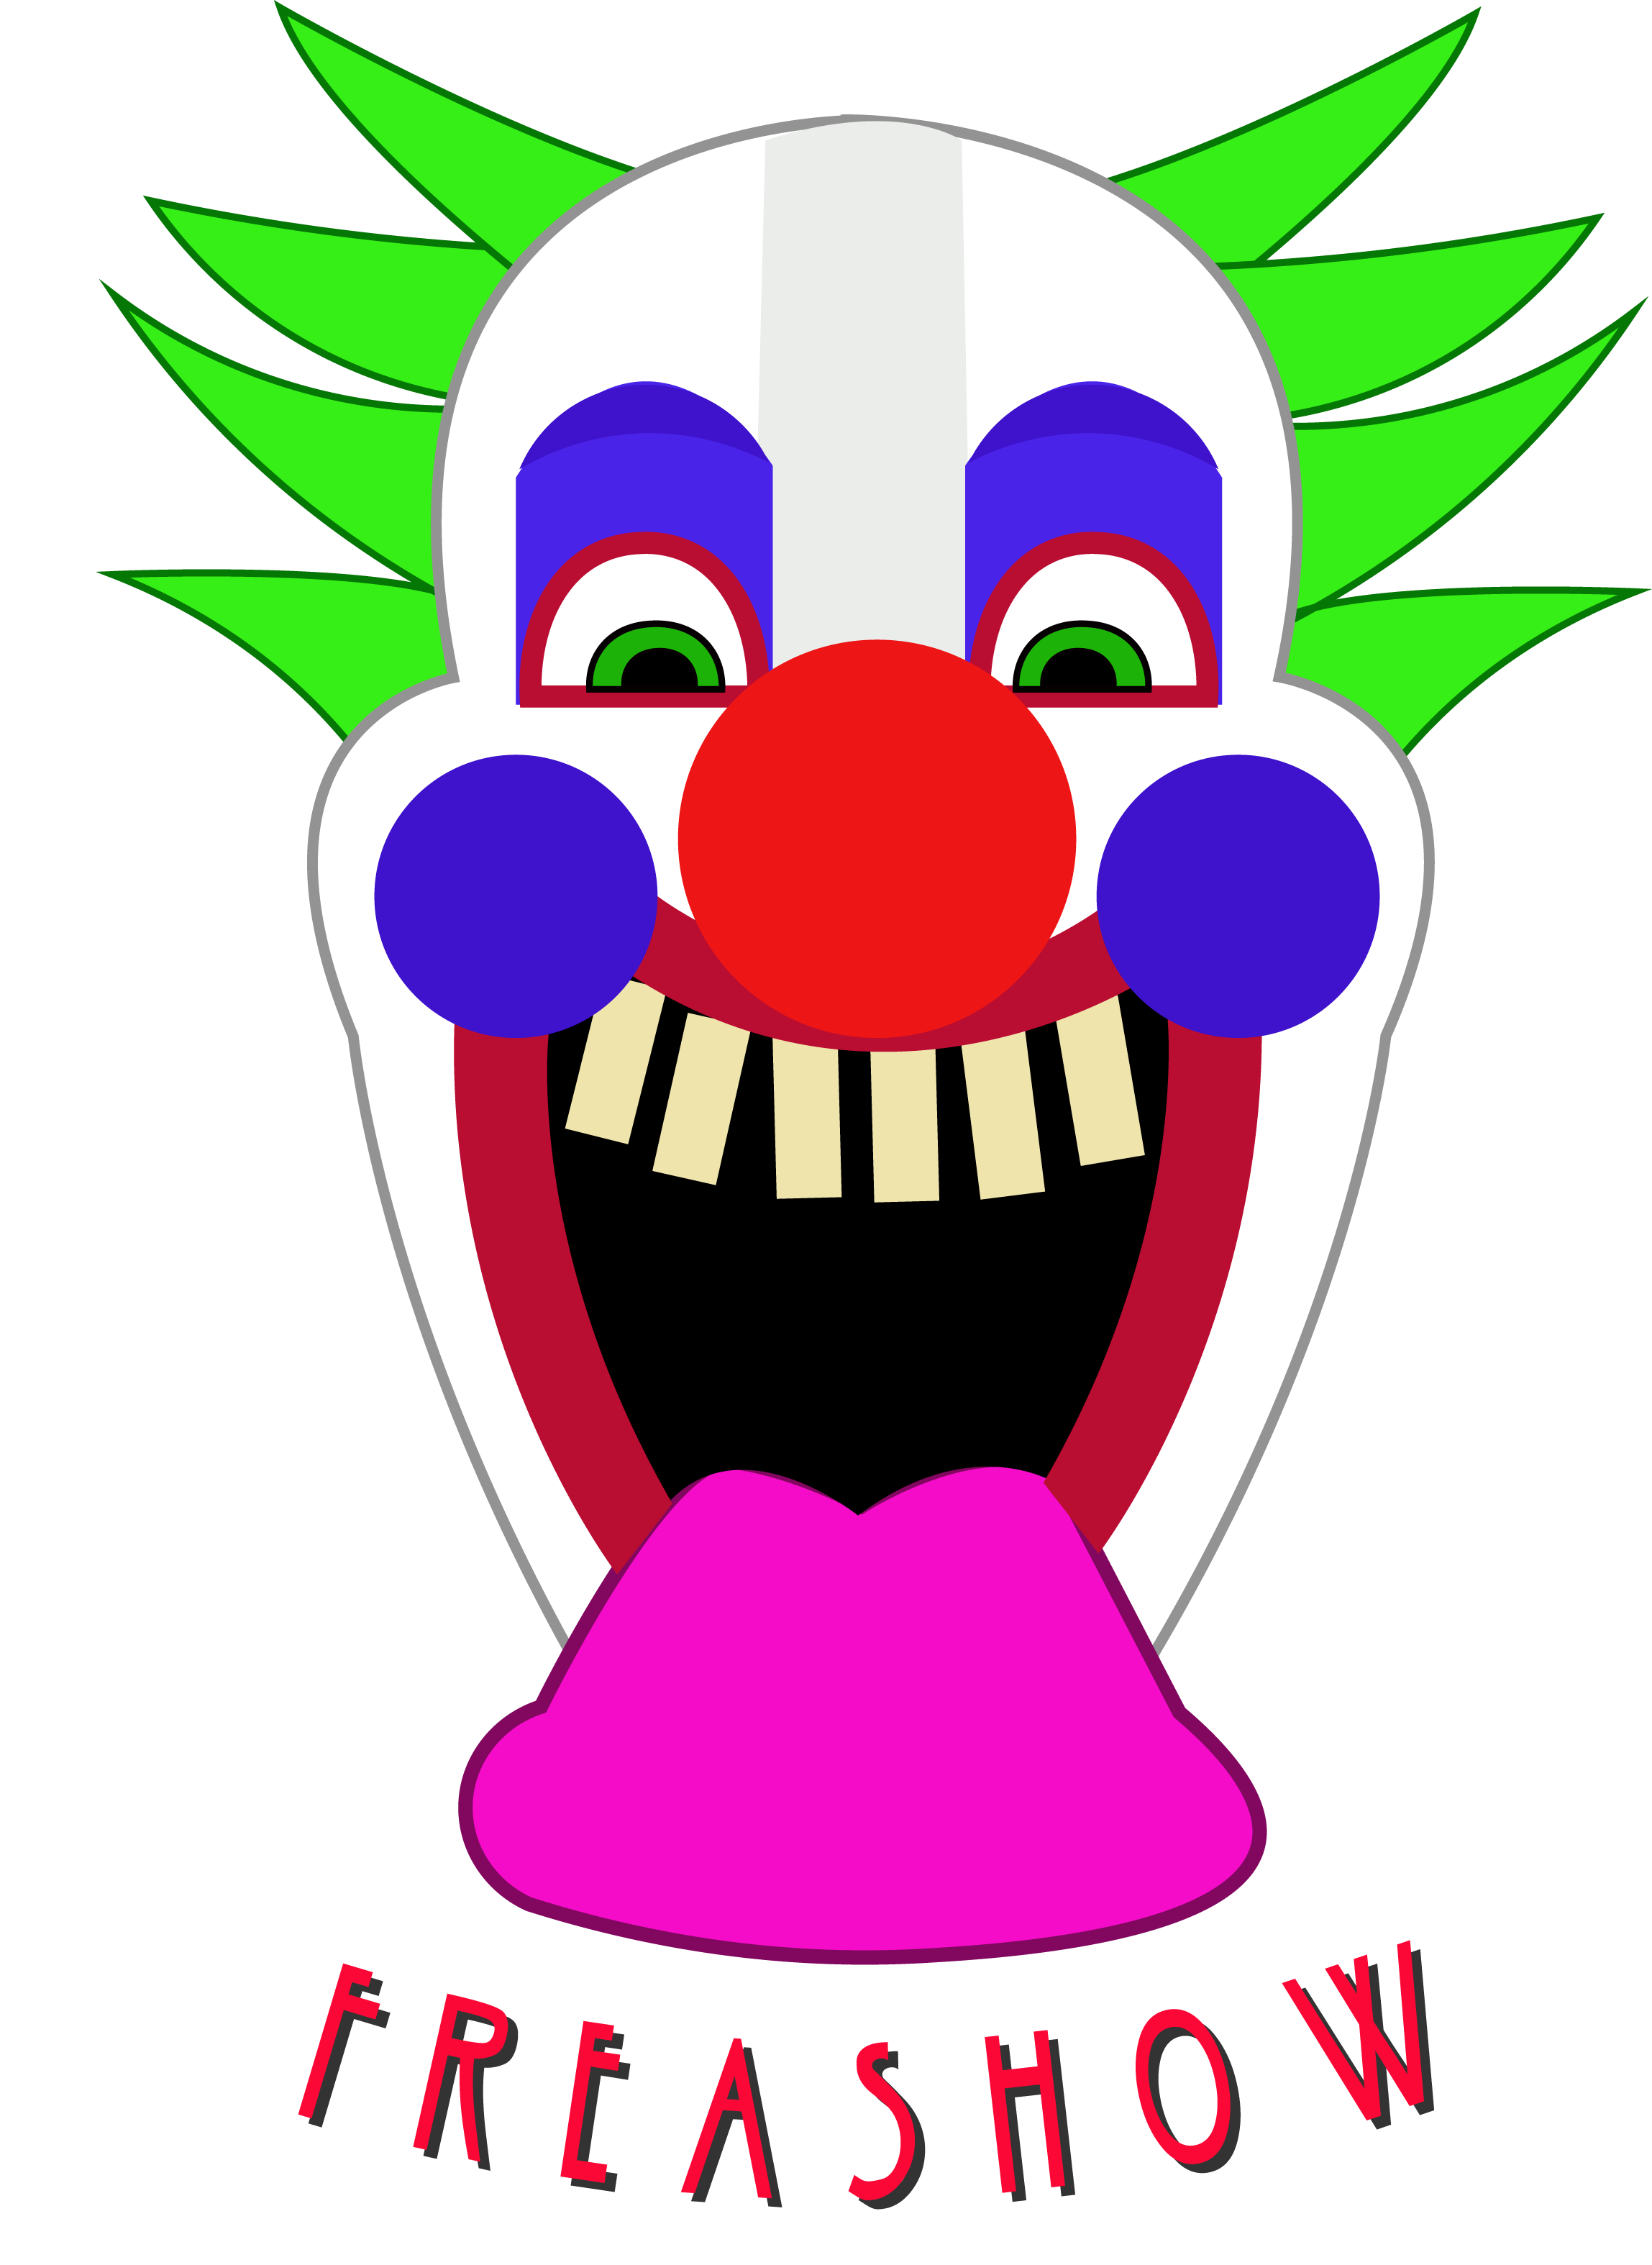 Clown clipart thin. Freakshow forgehub note